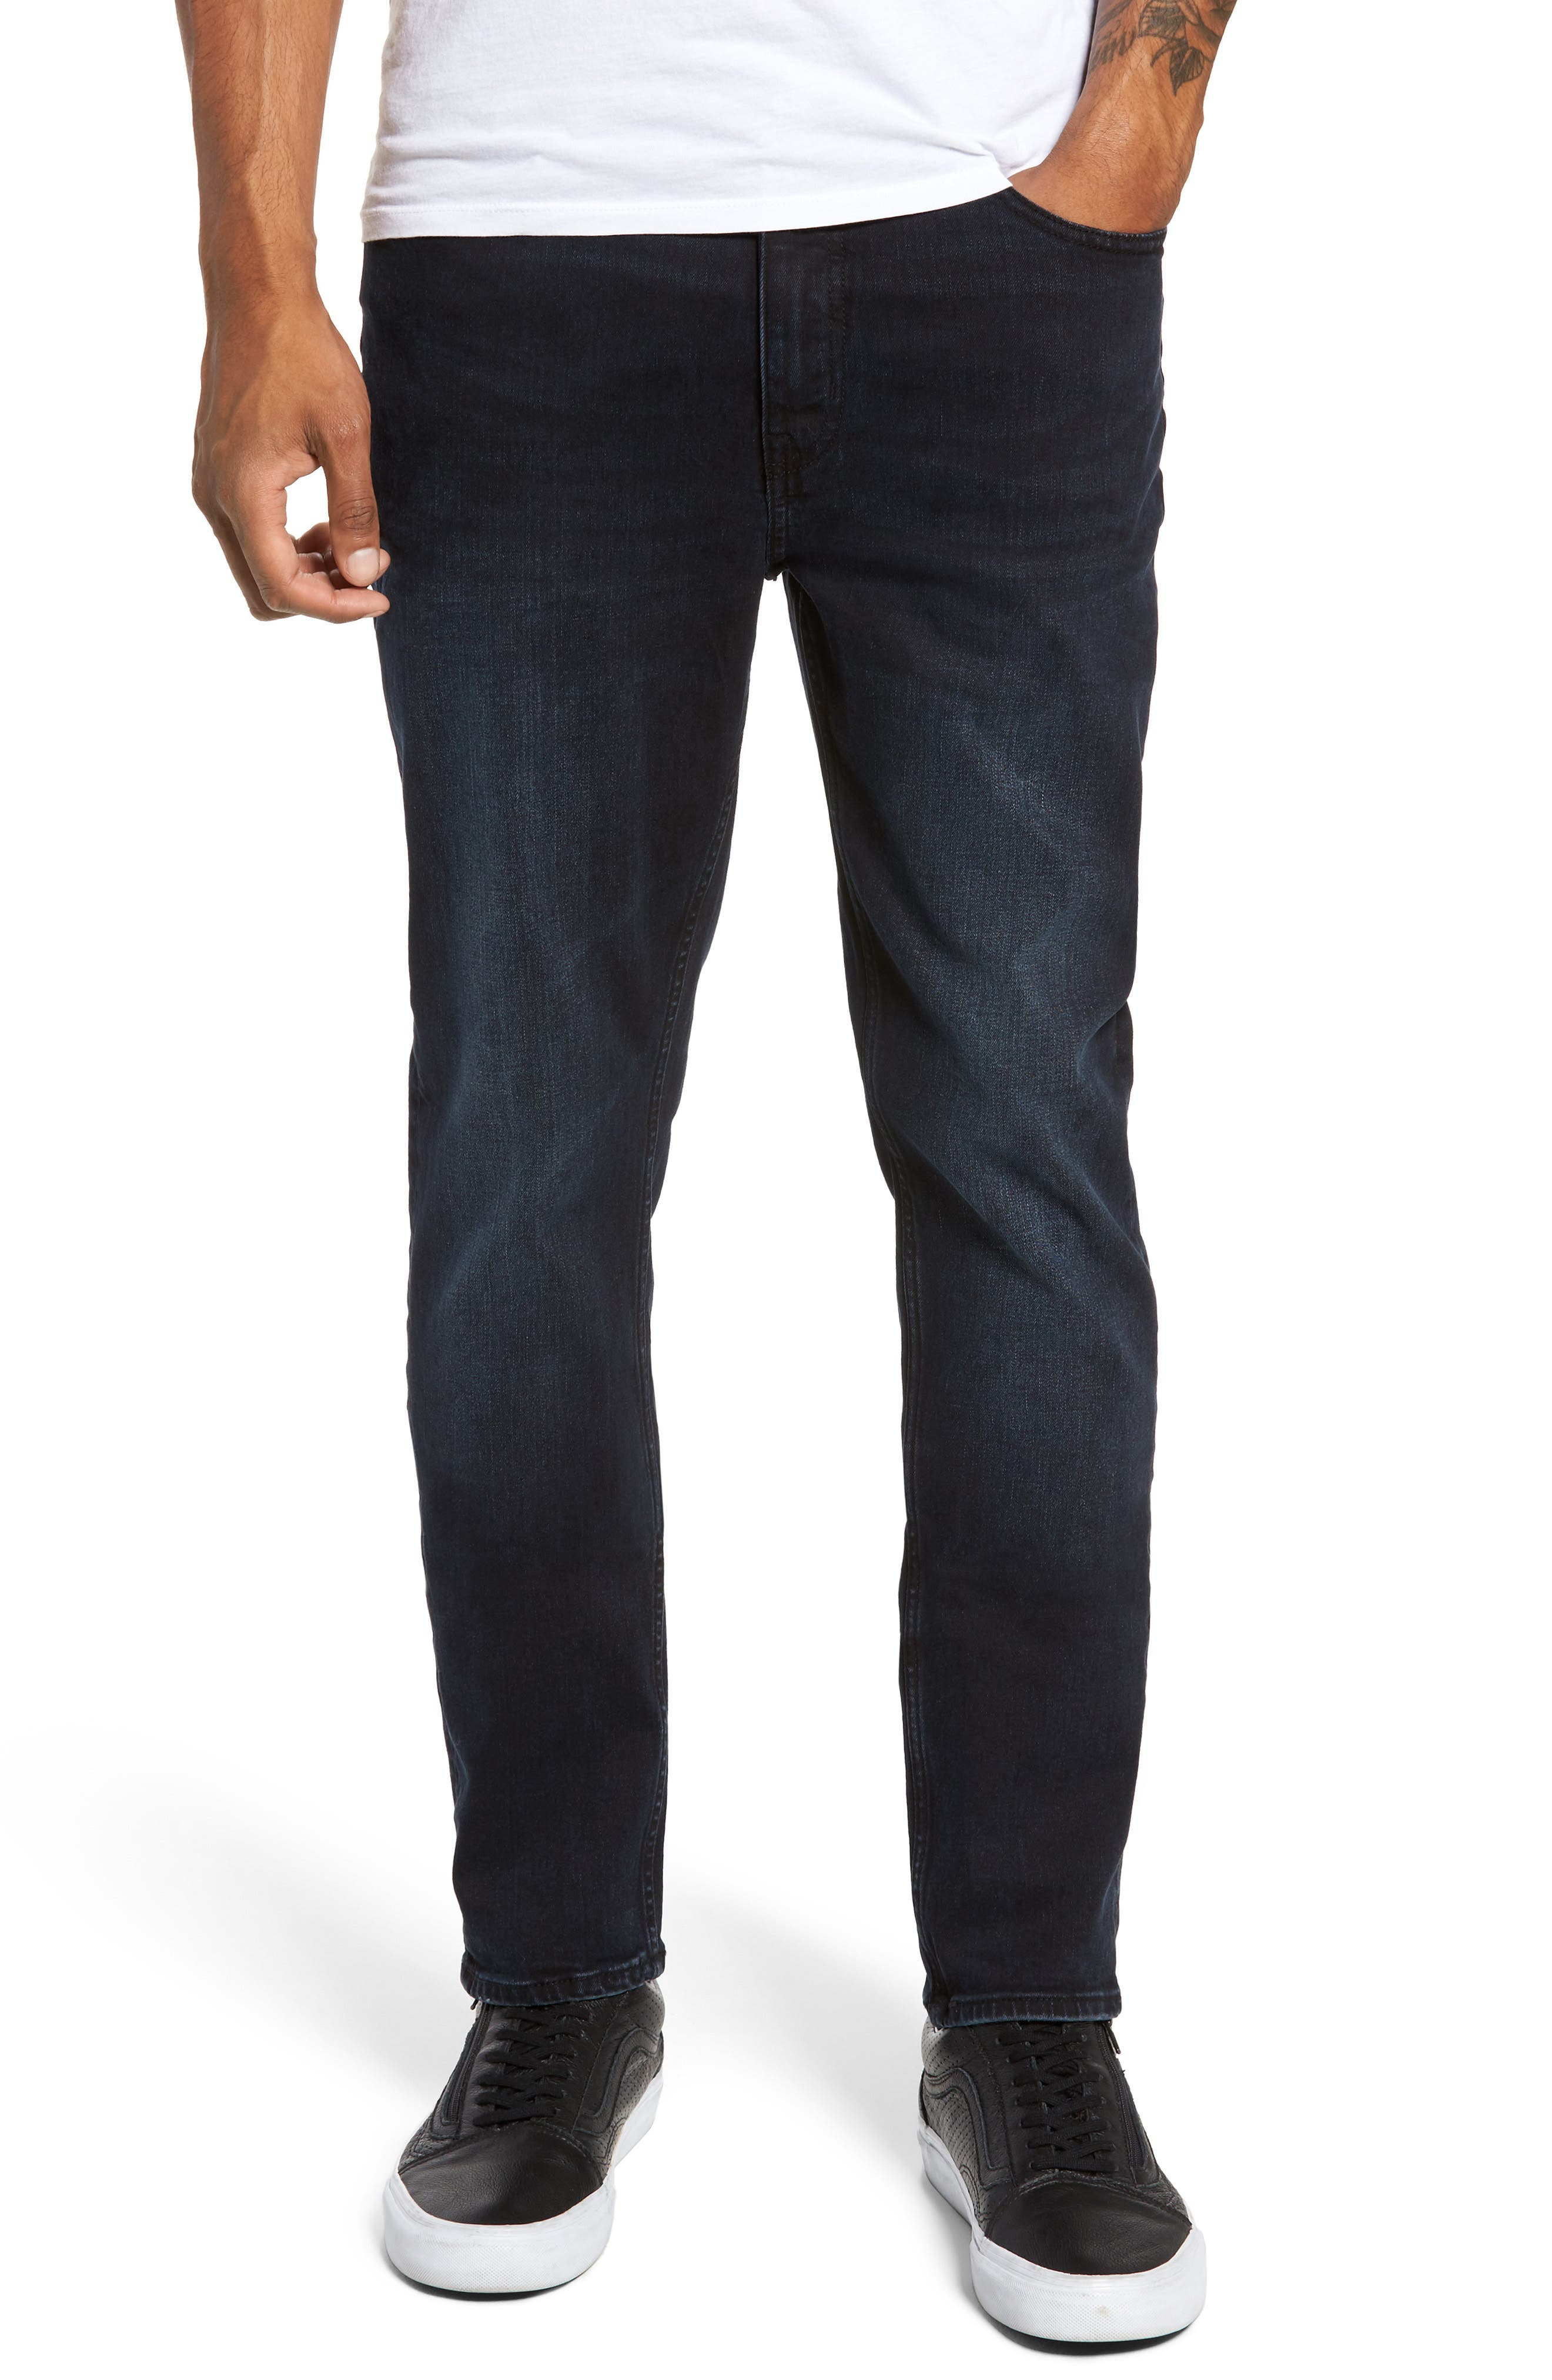 Sonic Skinny Fit Jeans,                         Main,                         color, 402